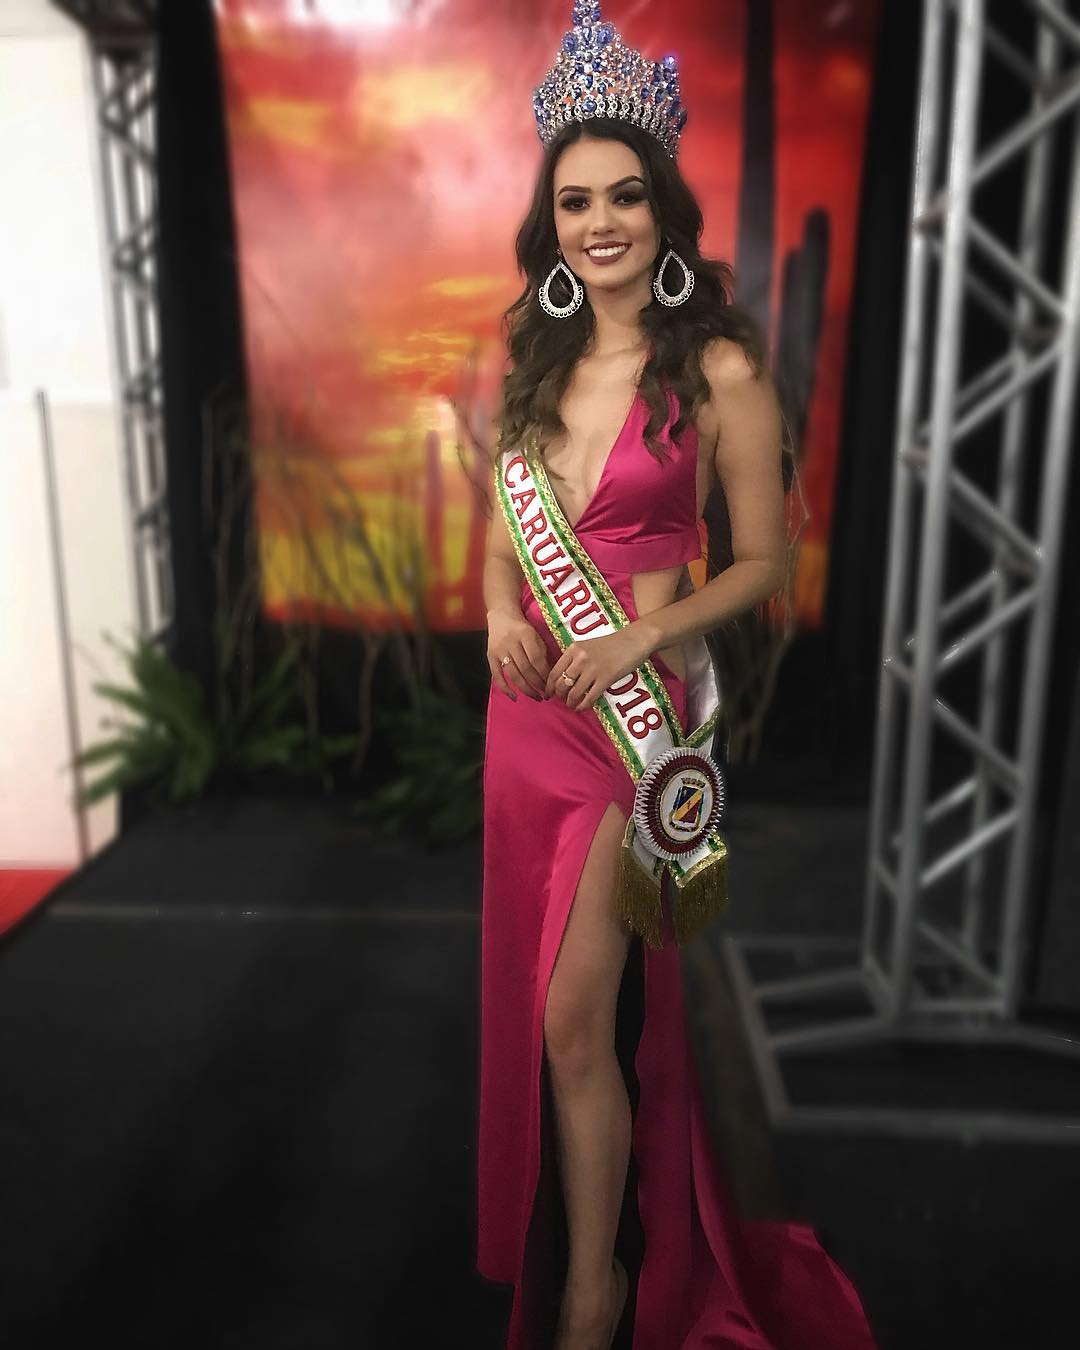 eslovenia marques, top 9 de miss grand brasil 2019. 27894111